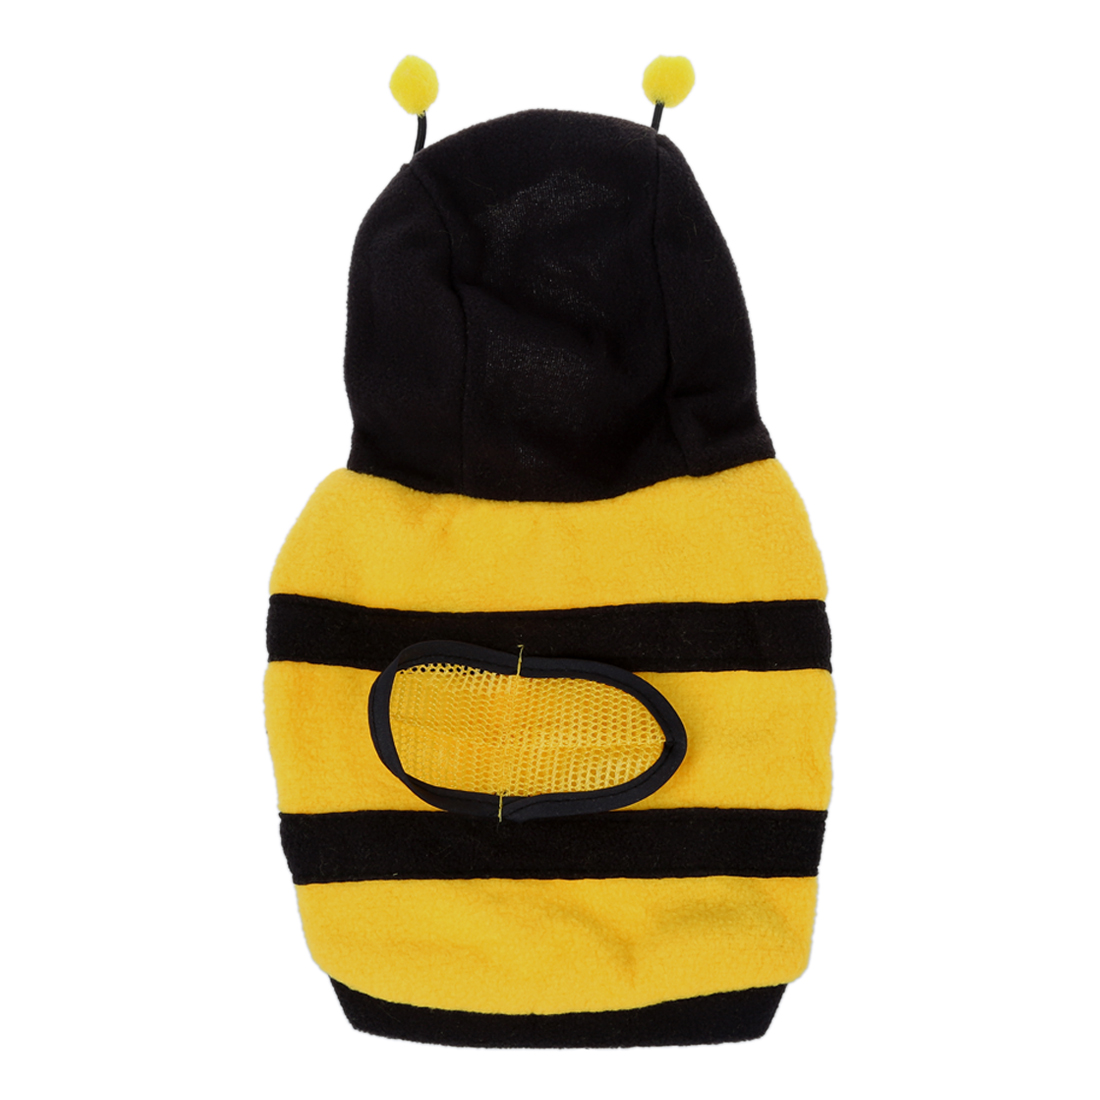 Practical Warm Plush Bee Type Hoodie Pet Dog Cat Puppy Coat Sweater Outerwear Size S